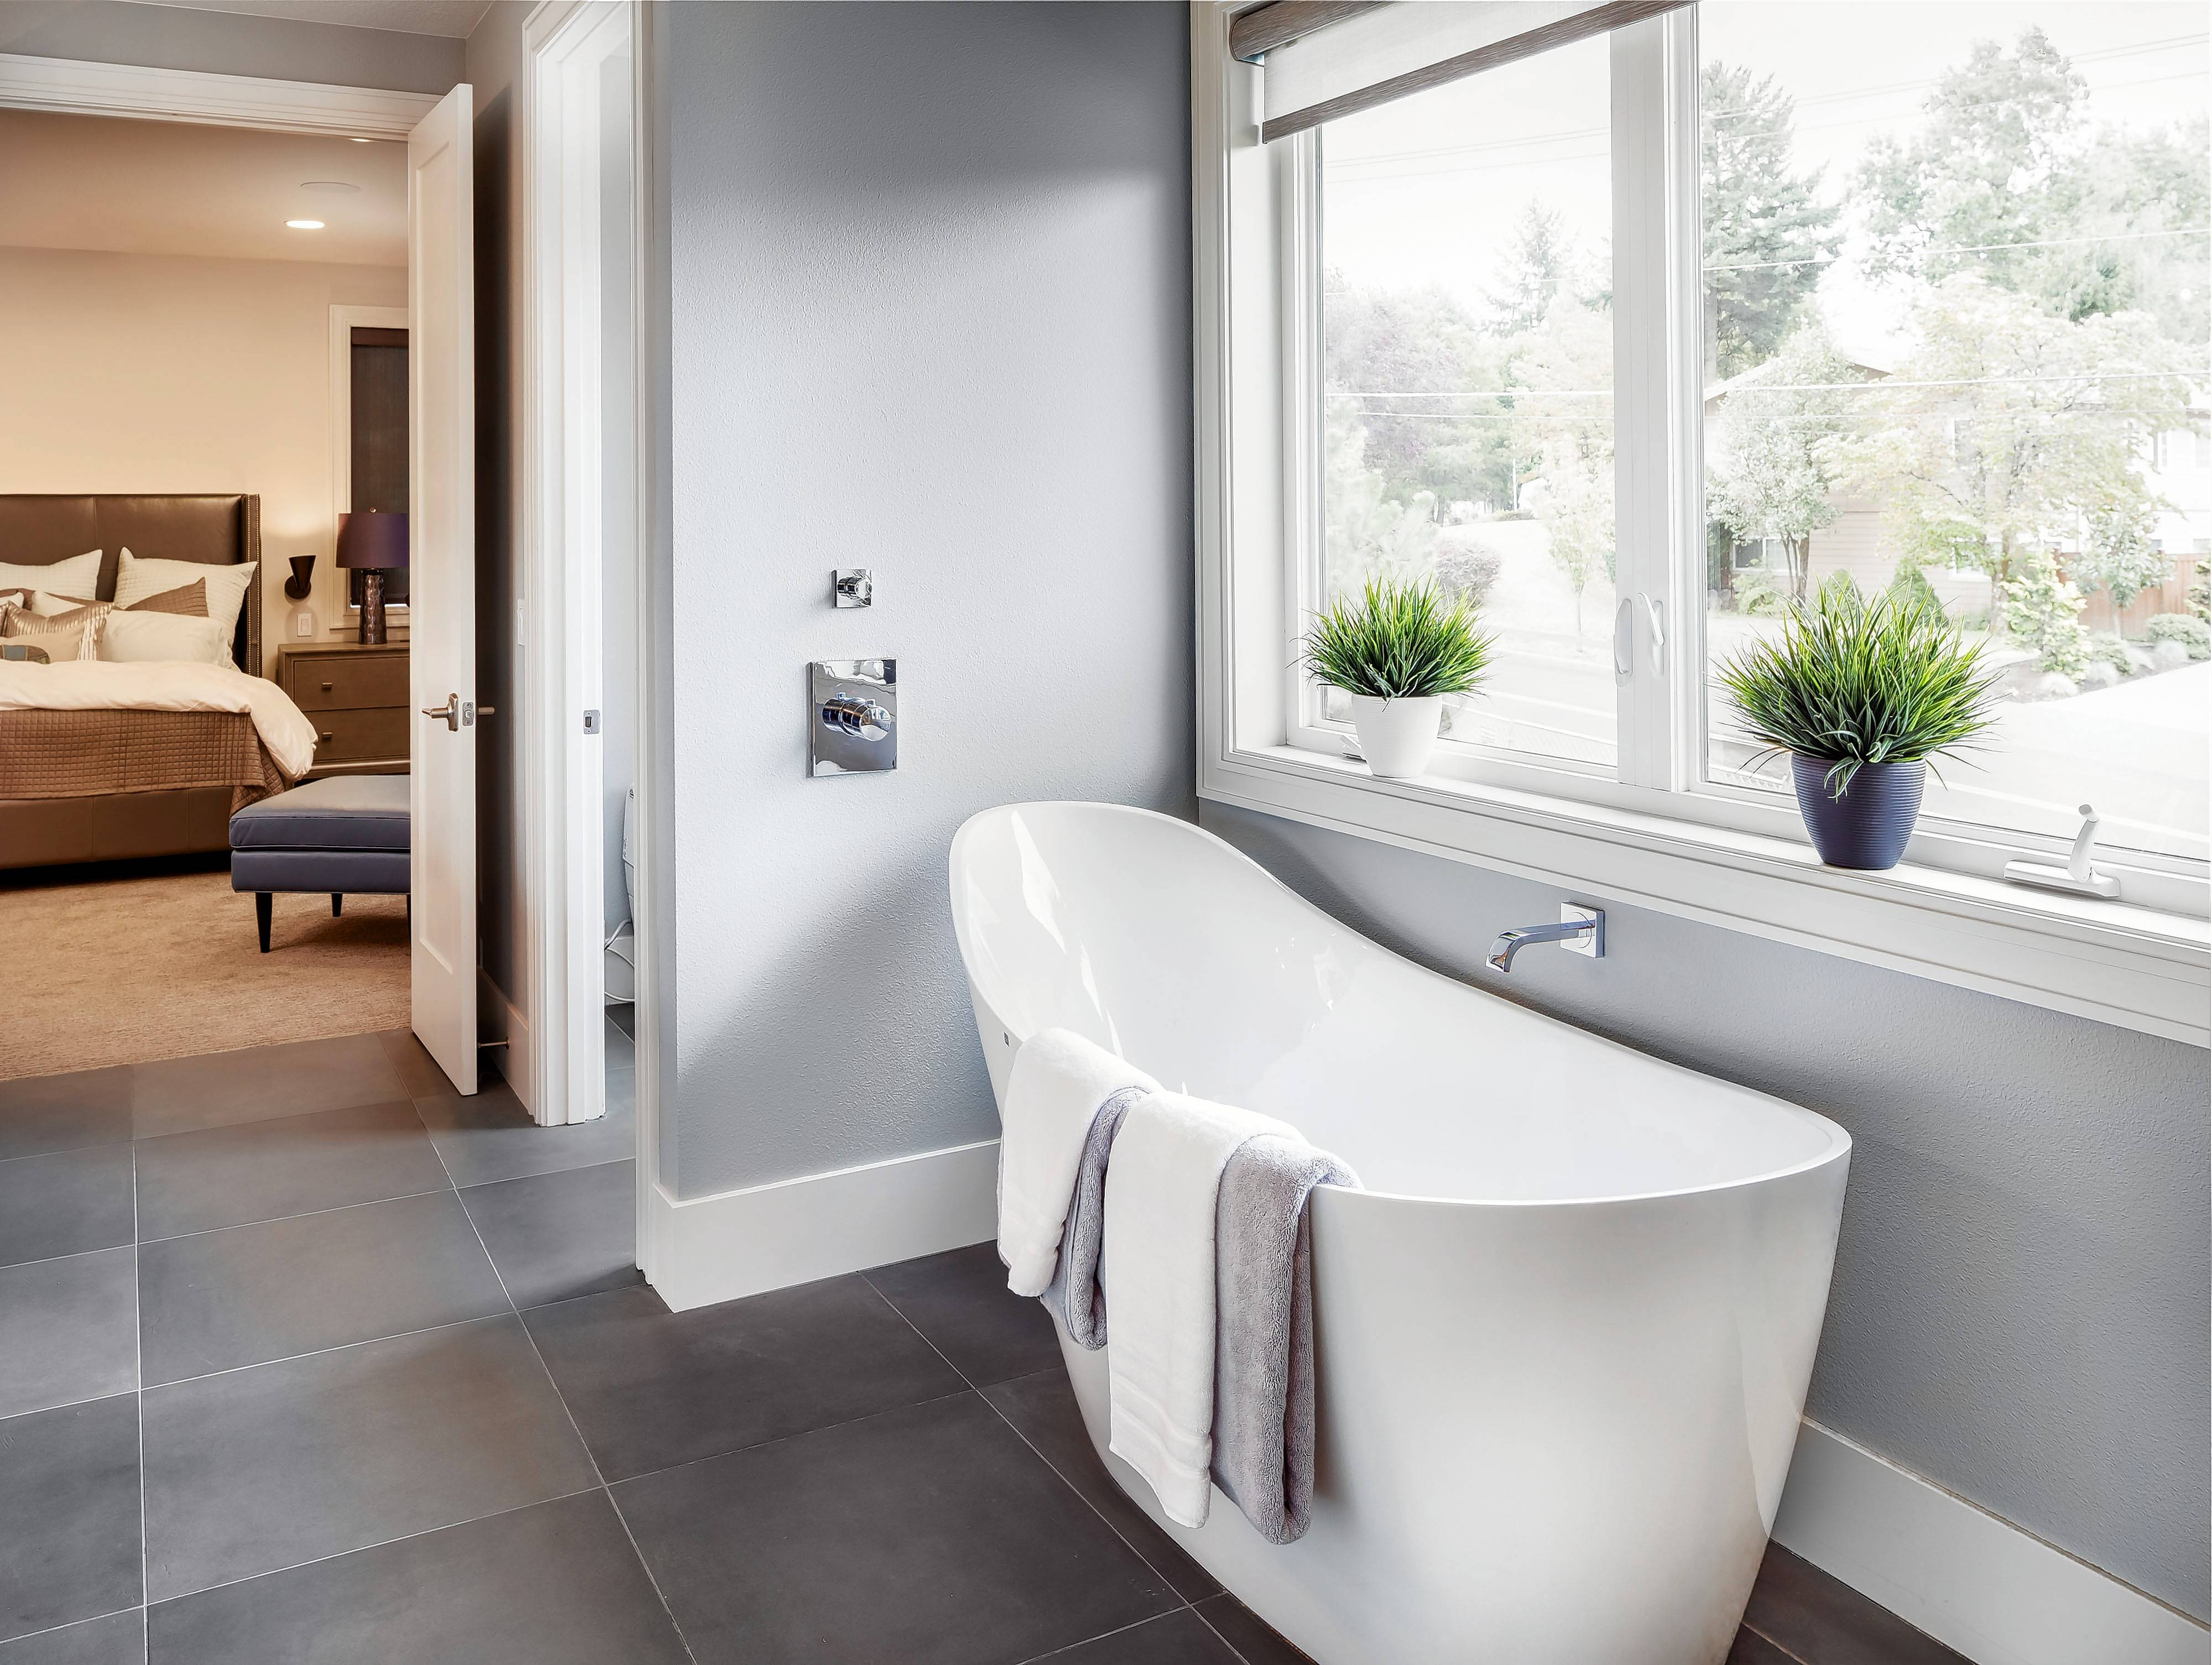 Free-standing bathtubs remain all the rage in master suites.